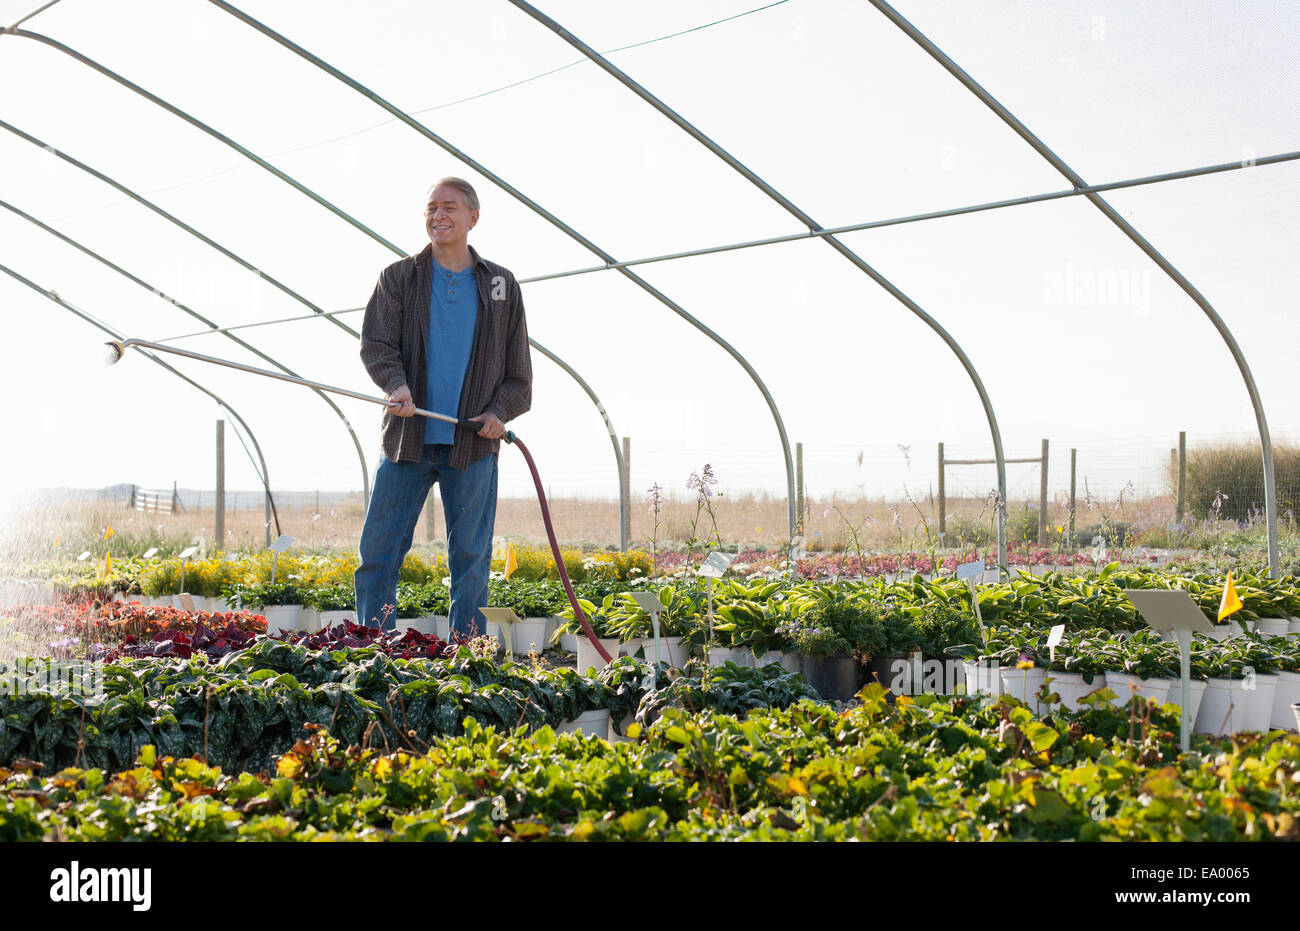 Male horticulturalist watering plants in plant nursery polytunnel - Stock Image